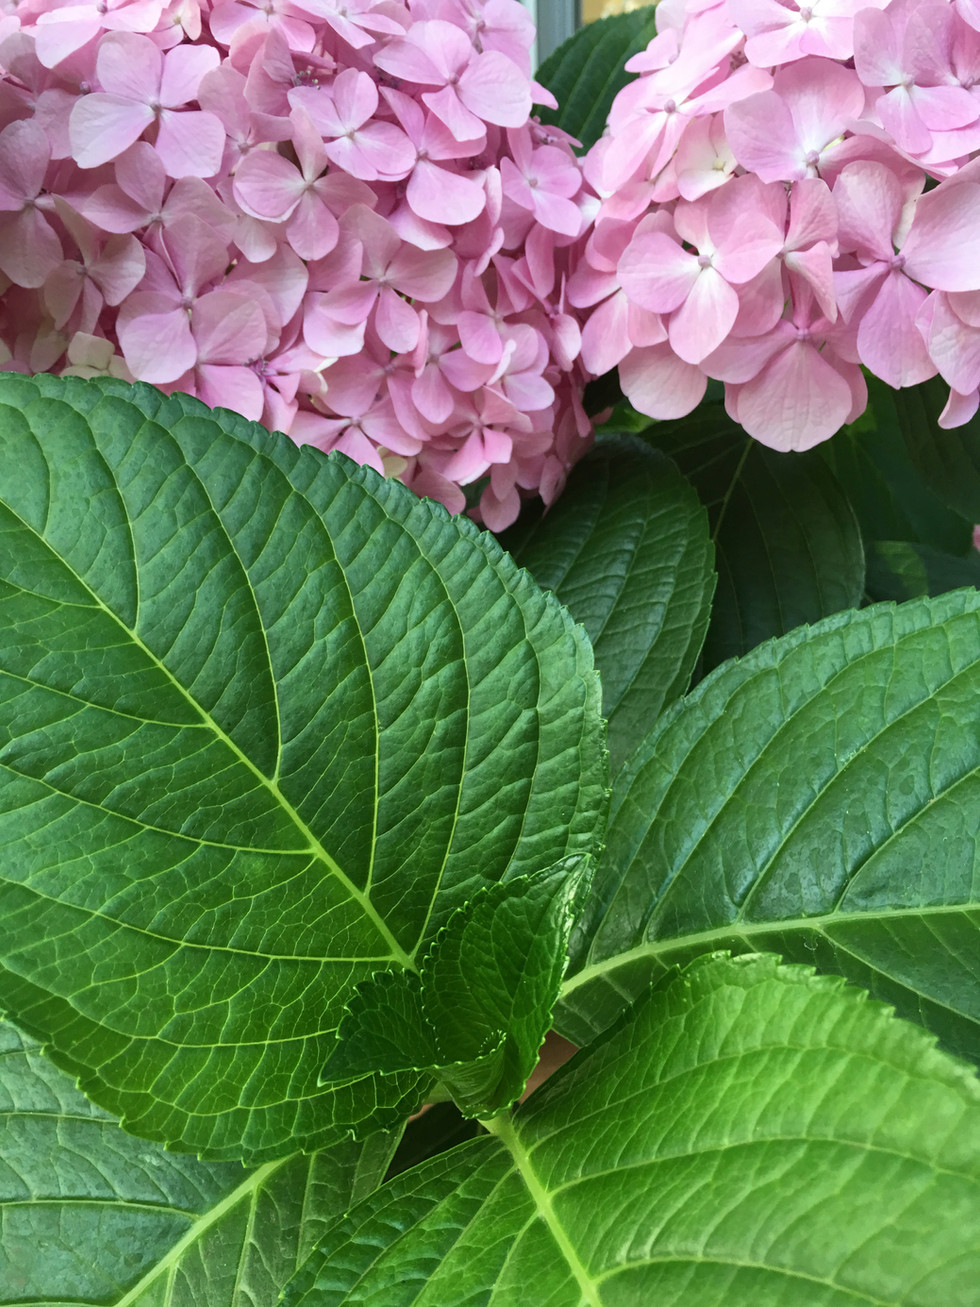 Growing Hydrangeas, Camellias, Magnolias, Rhododendrons and other cool climate plants in hot weather